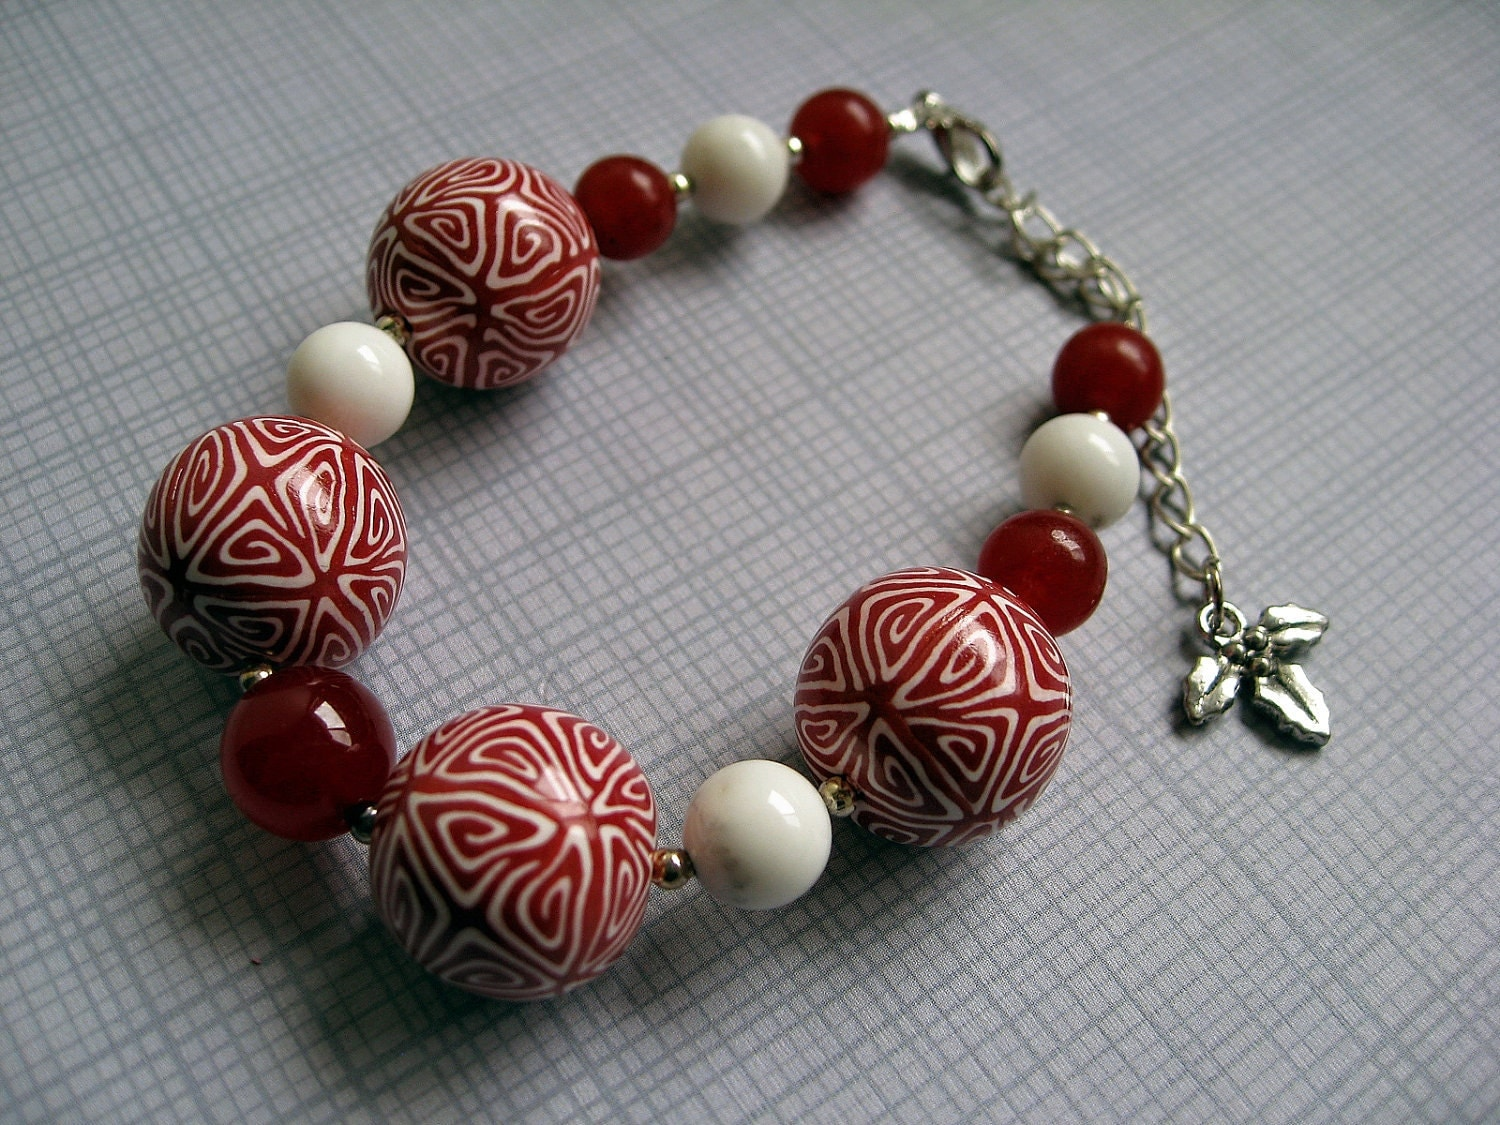 Celtic Christmas - Polymer Clay Bracelet with Holly Charm